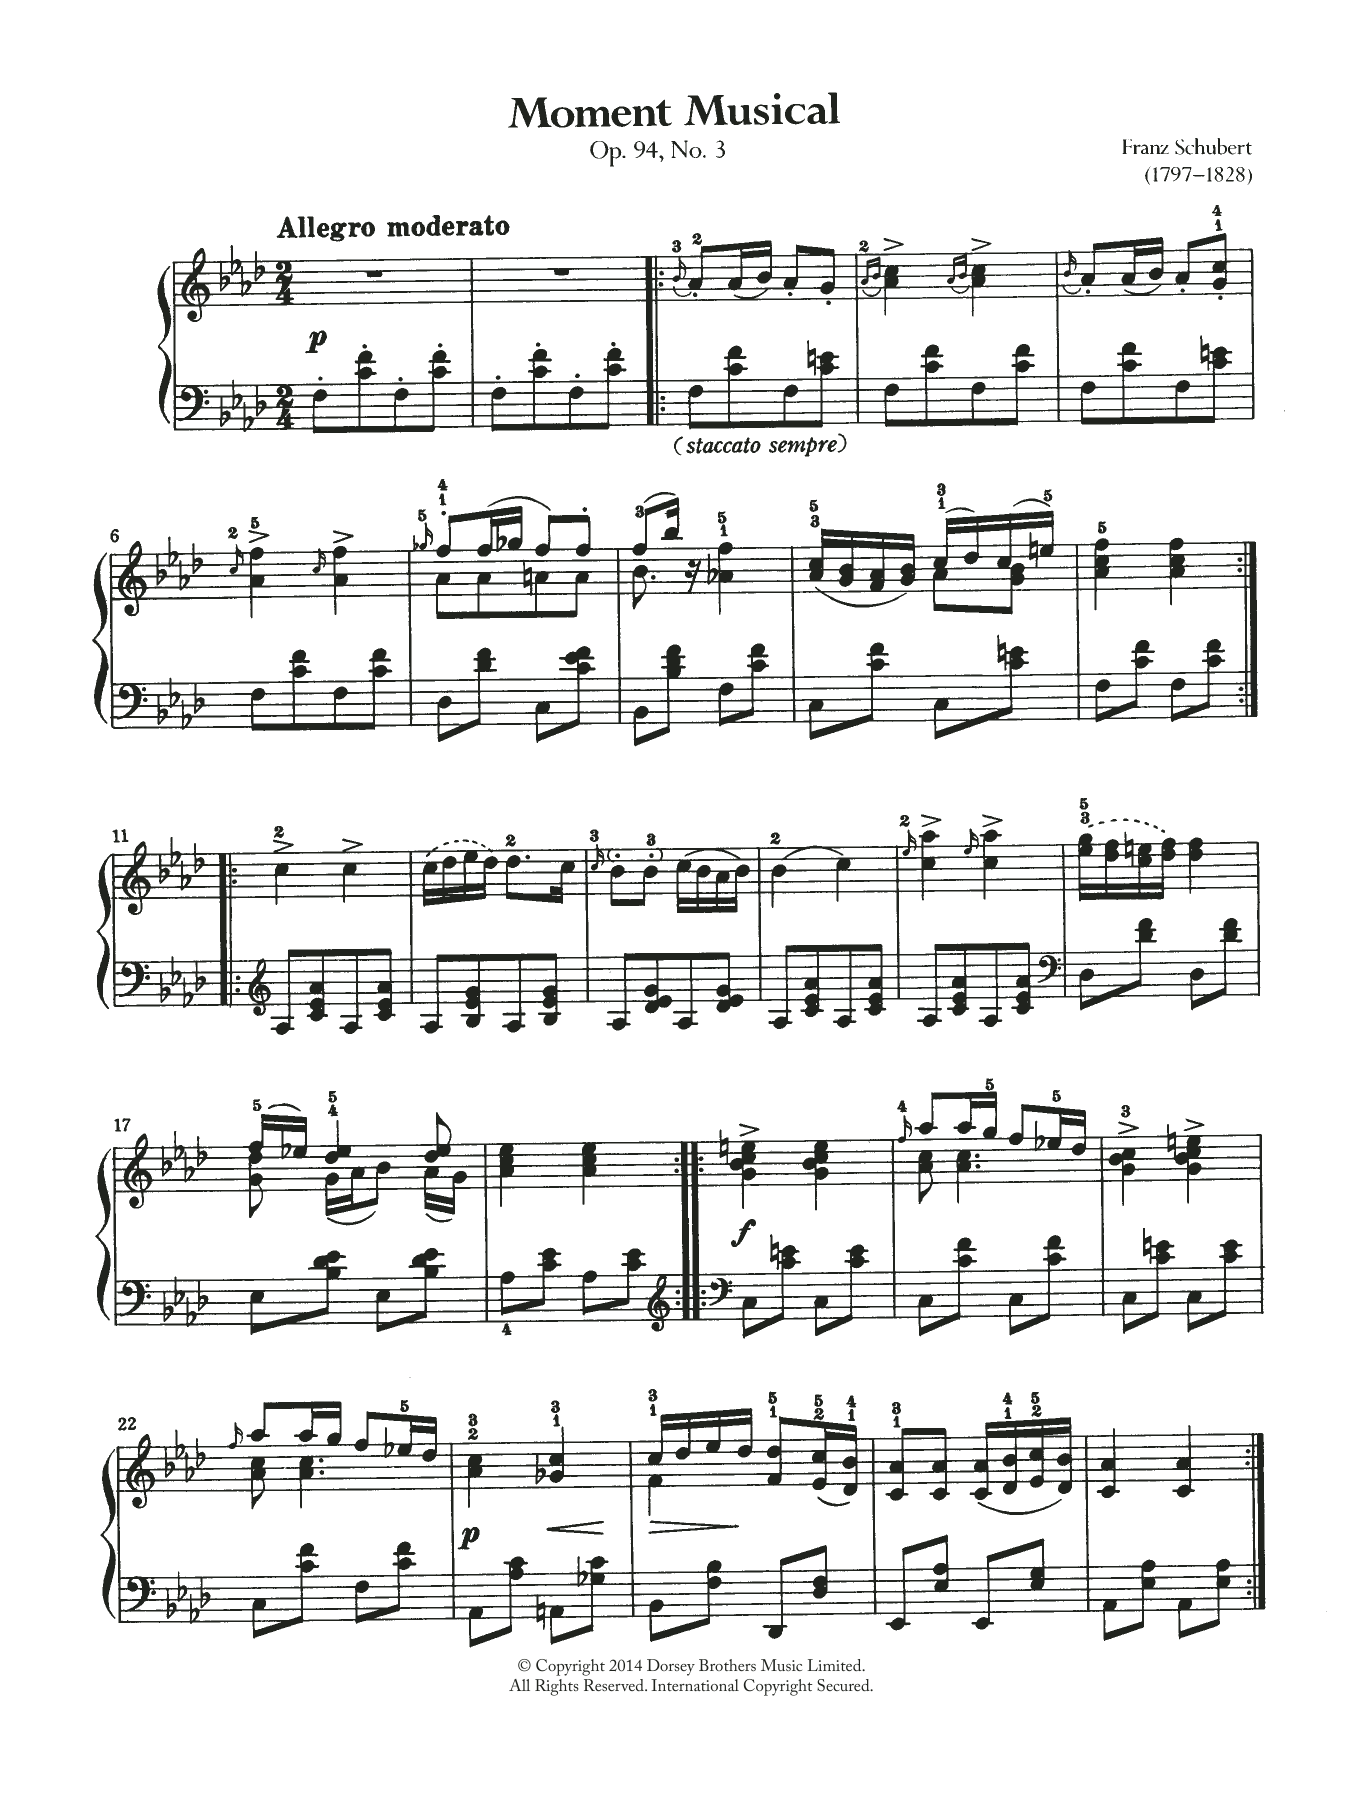 Franz Schubert - Moment Musical